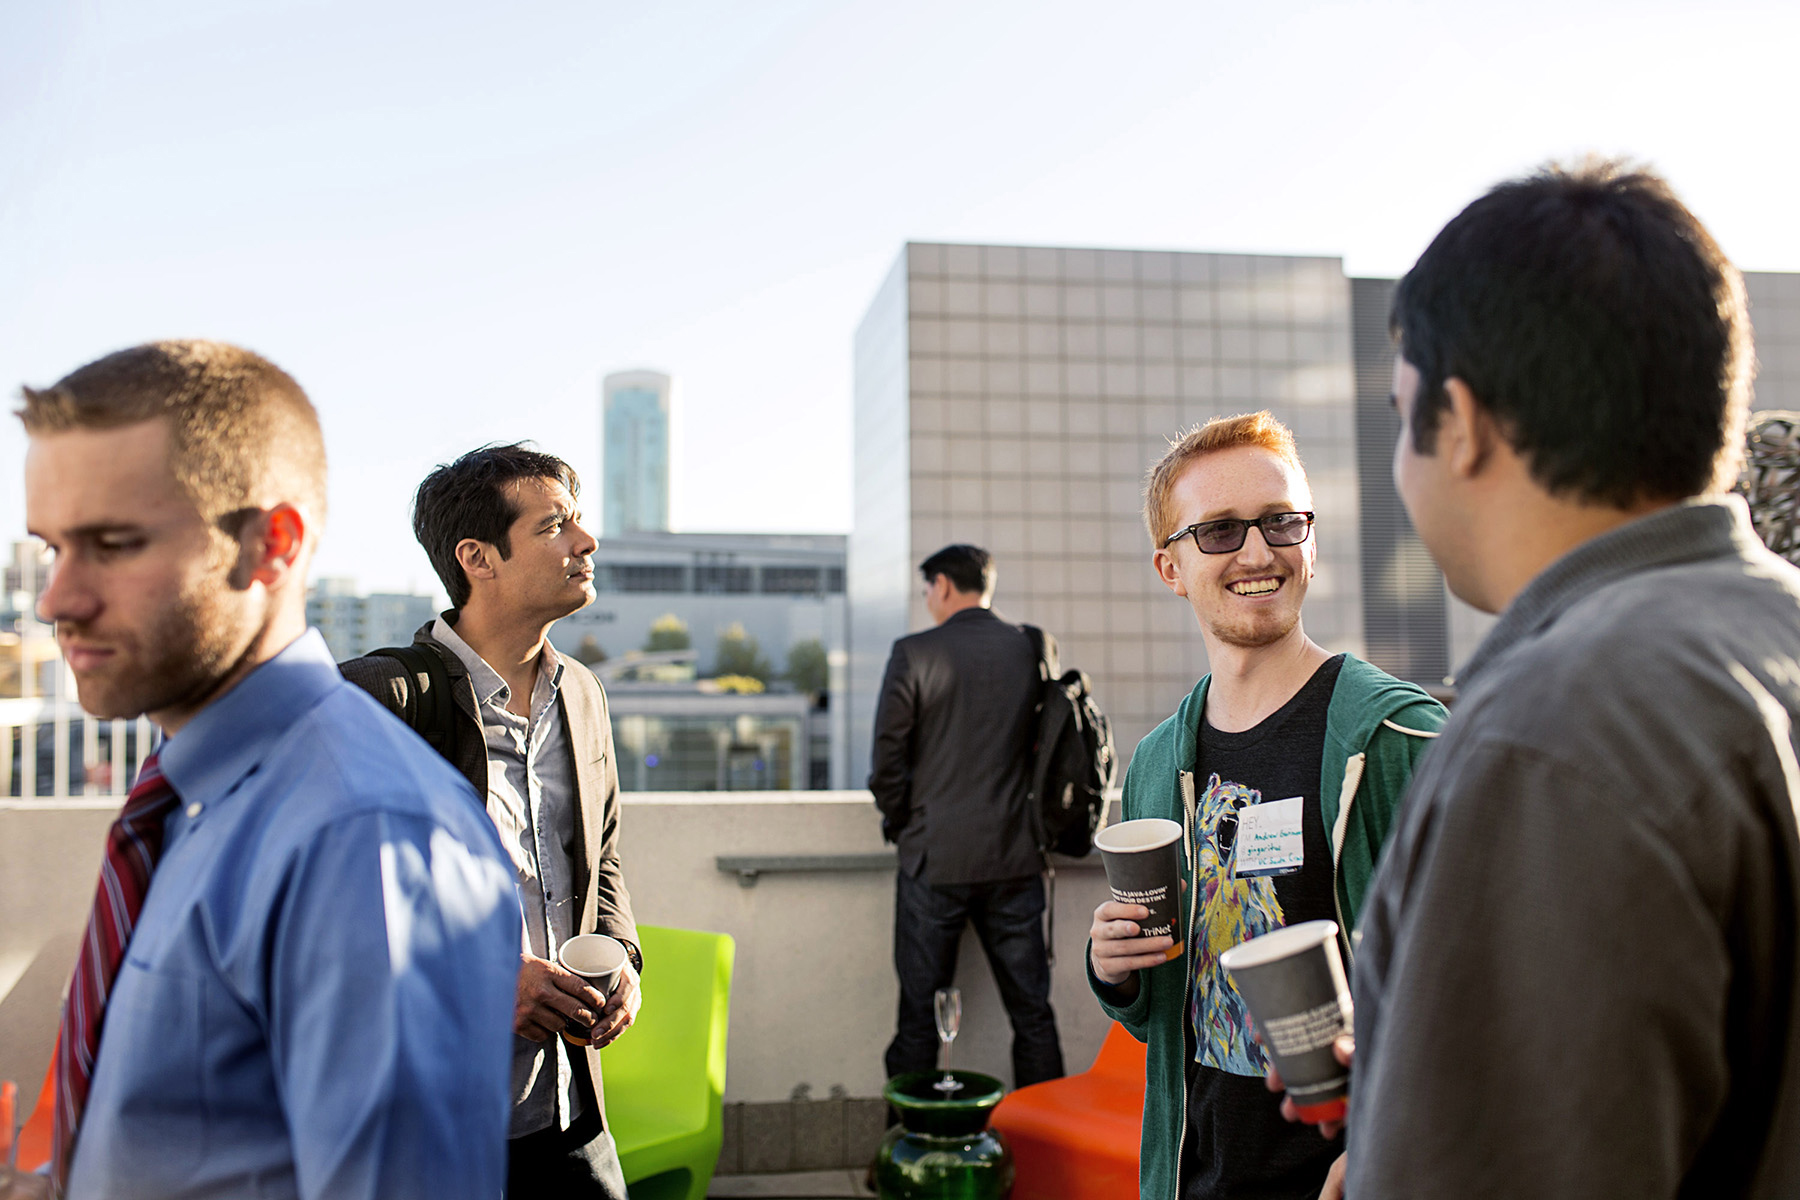 Attendees of the Startup and Tech Mixer, a tech industry networking event, mingle with one another on the roof deck of the W Hotel in San Francisco, California in August 2015. The event drew hundreds of attendees. While many companies could be built anywhere thanks to advances in technology, many entrepreneurs feel they need to be in the area to have the networking opportunities required to raise funding and build their companies.